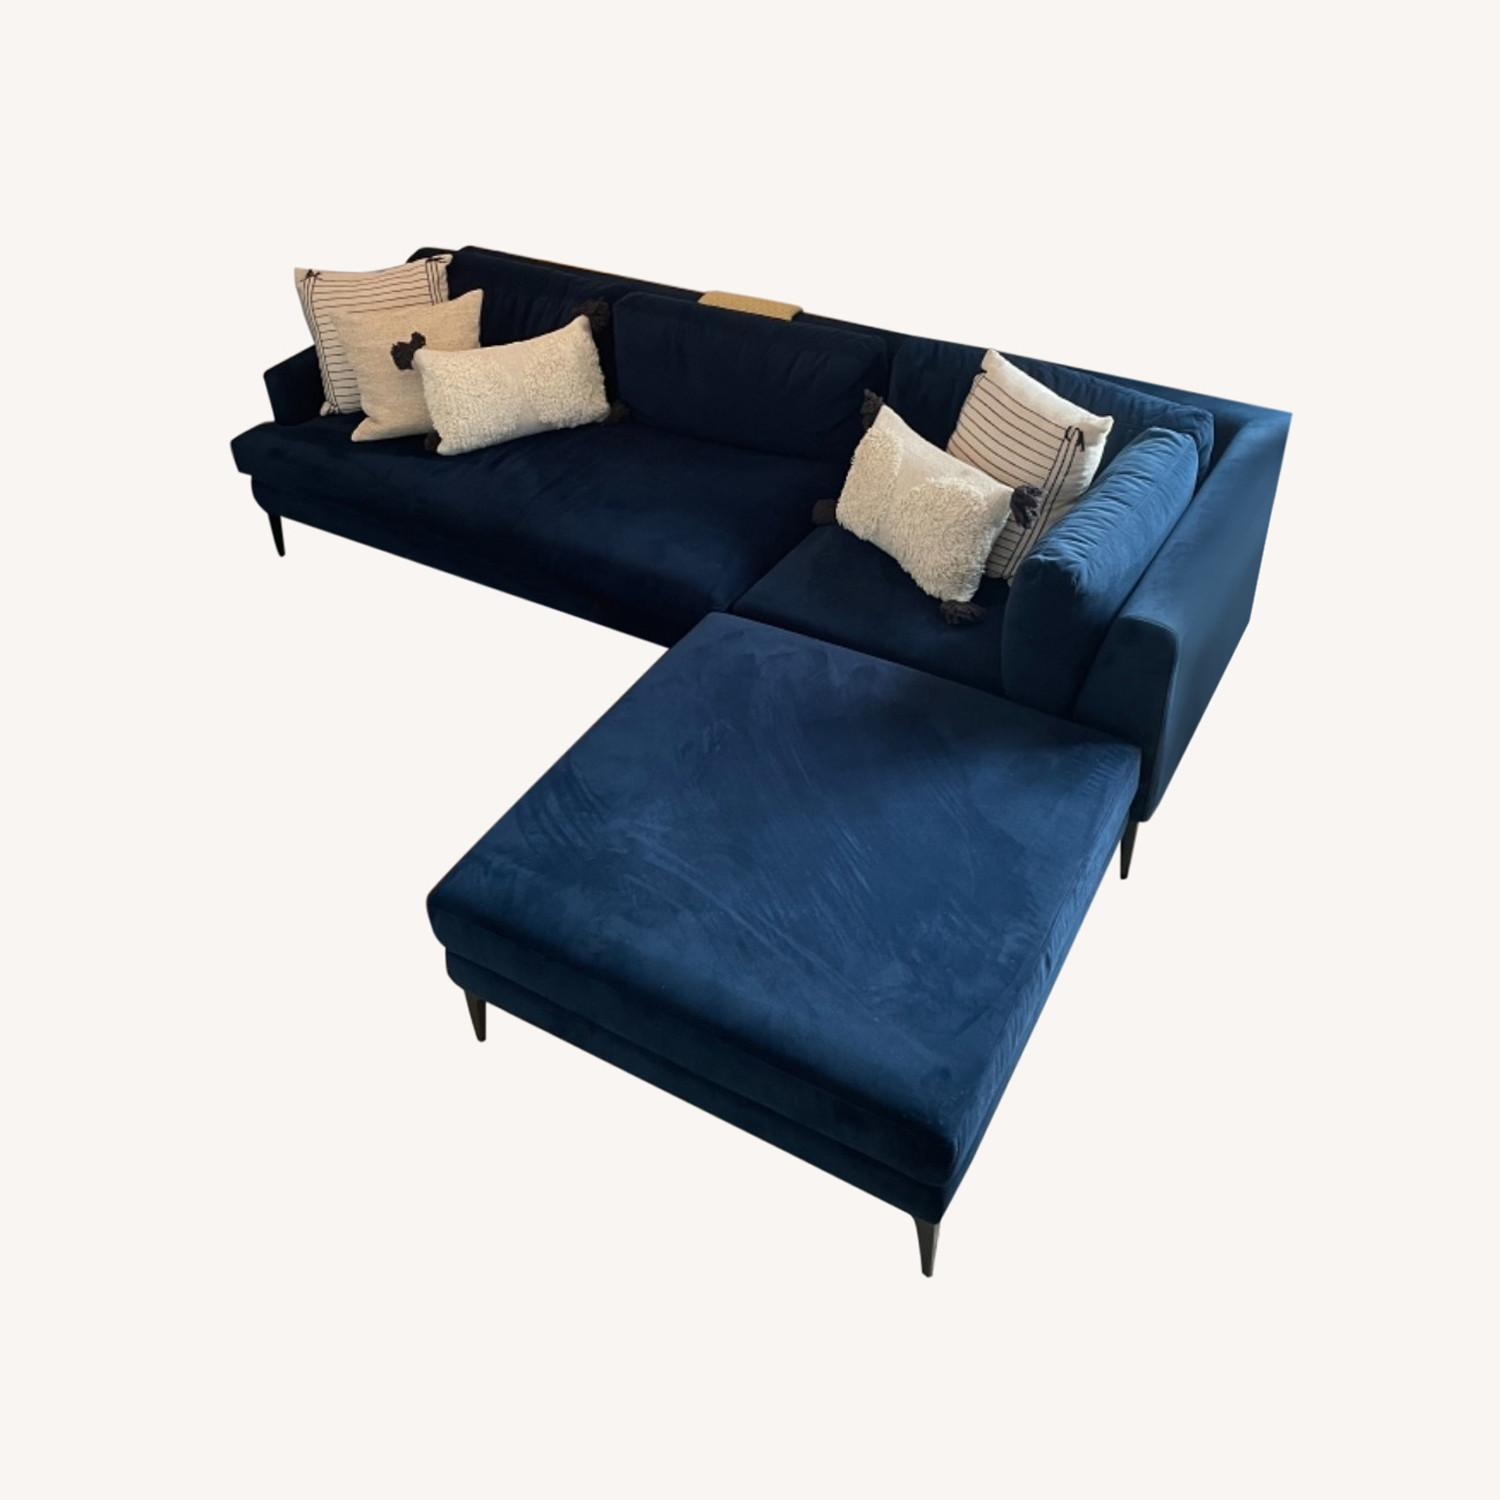 West Elm Andes 3-Piece Left Sectional Navy - image-0